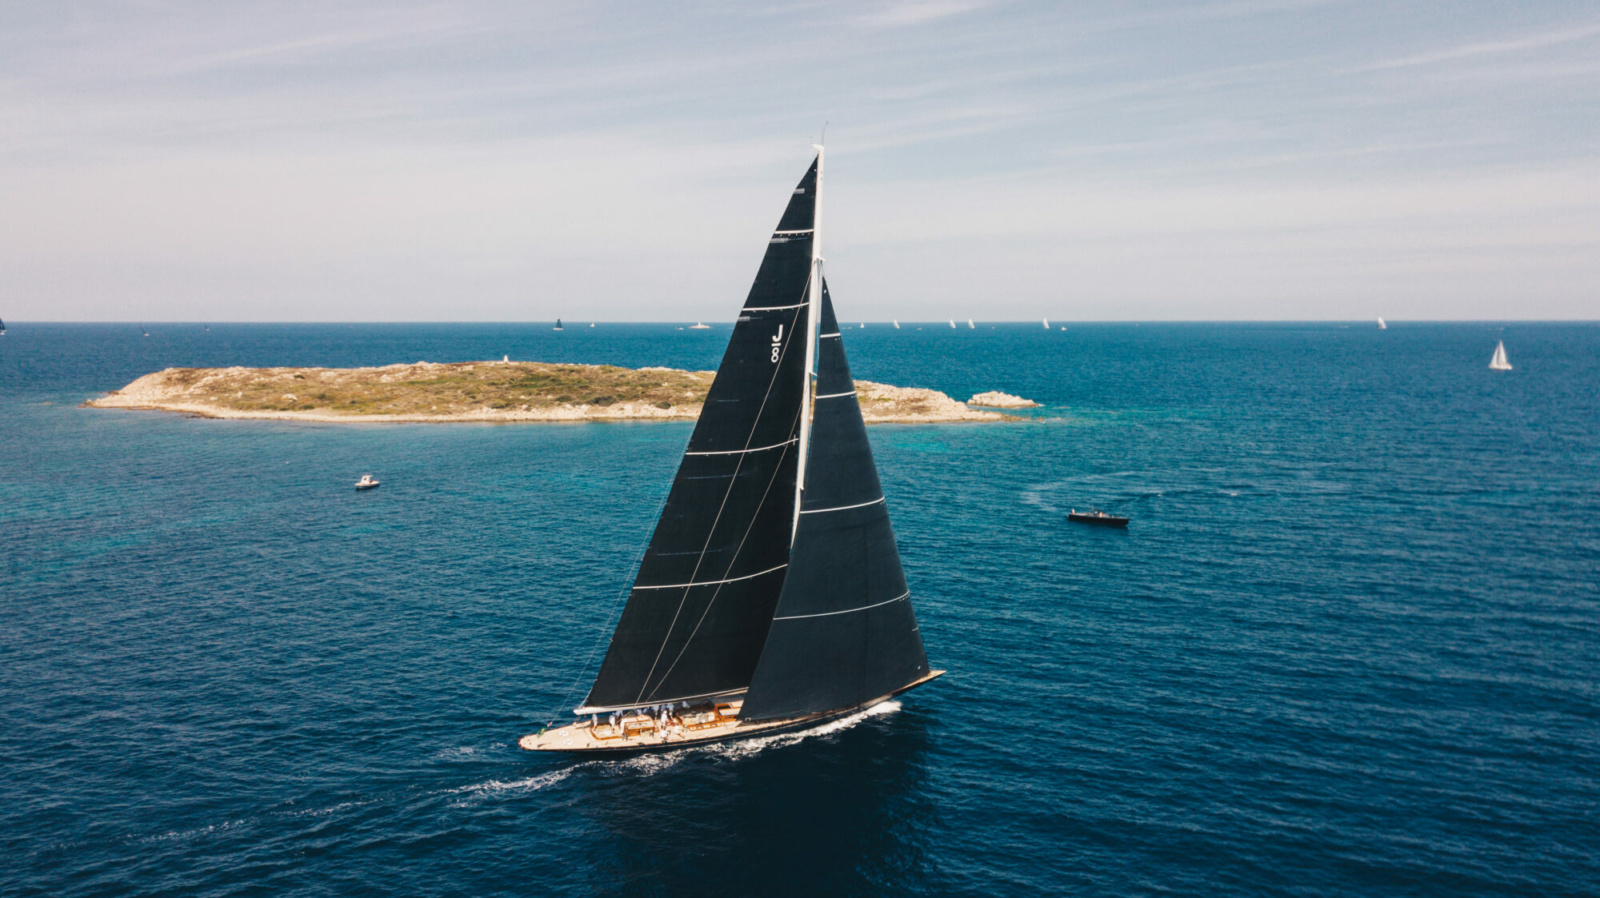 2021 Maxi Yacht Rolex Cup